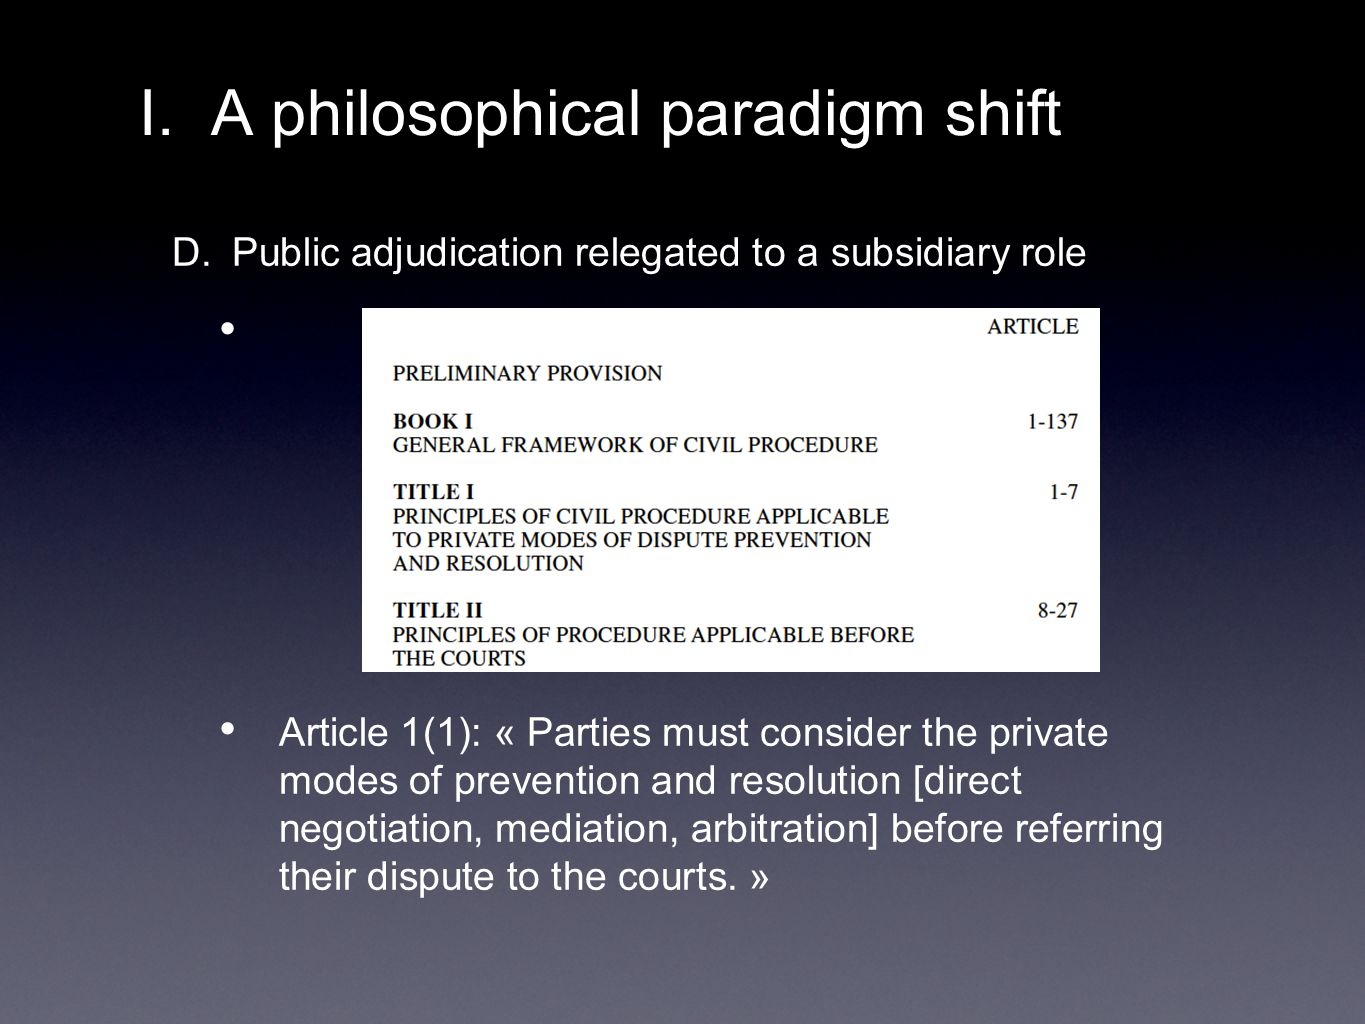 D. Public adjudication relegated to a subsidiary role Article 1(1): « Parties must consider the private modes of prevention and resolution [direct neg